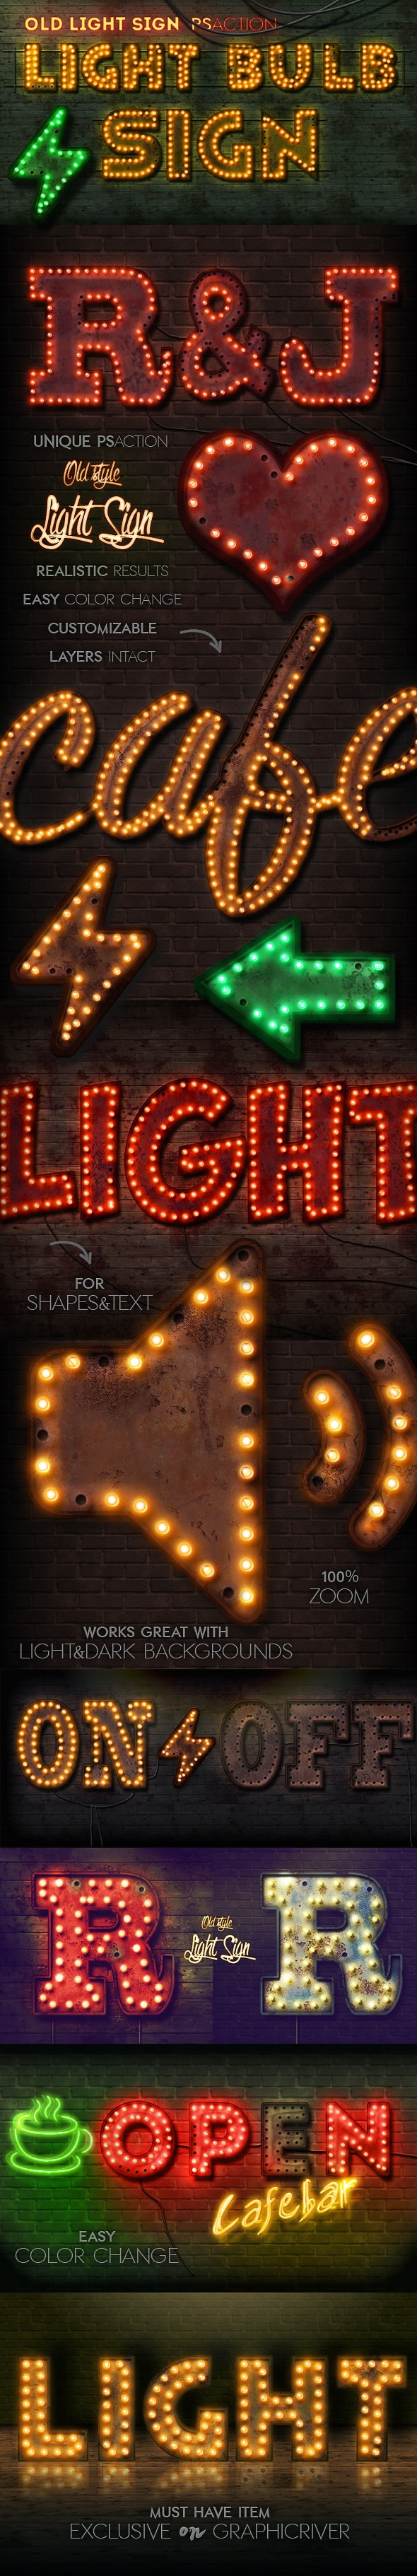 Old Light Sign Photoshop Action - Text Effects Actions